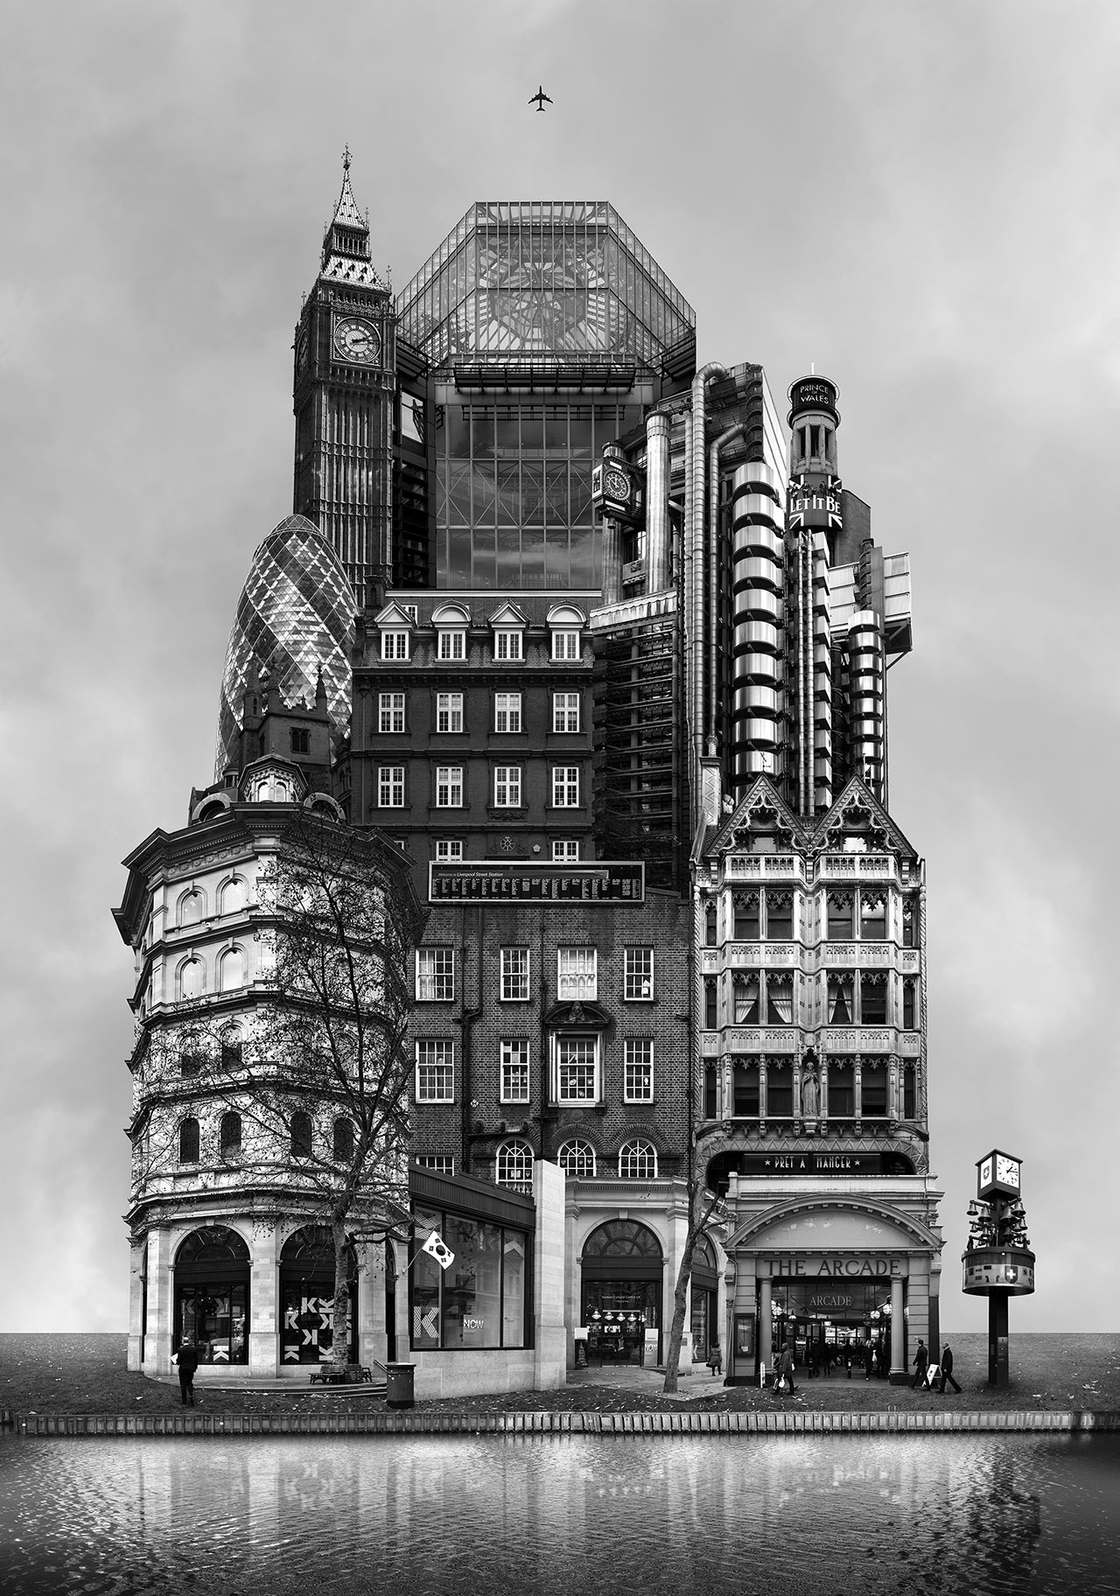 Archisculpture - The surreal architectures of Beomsik Won